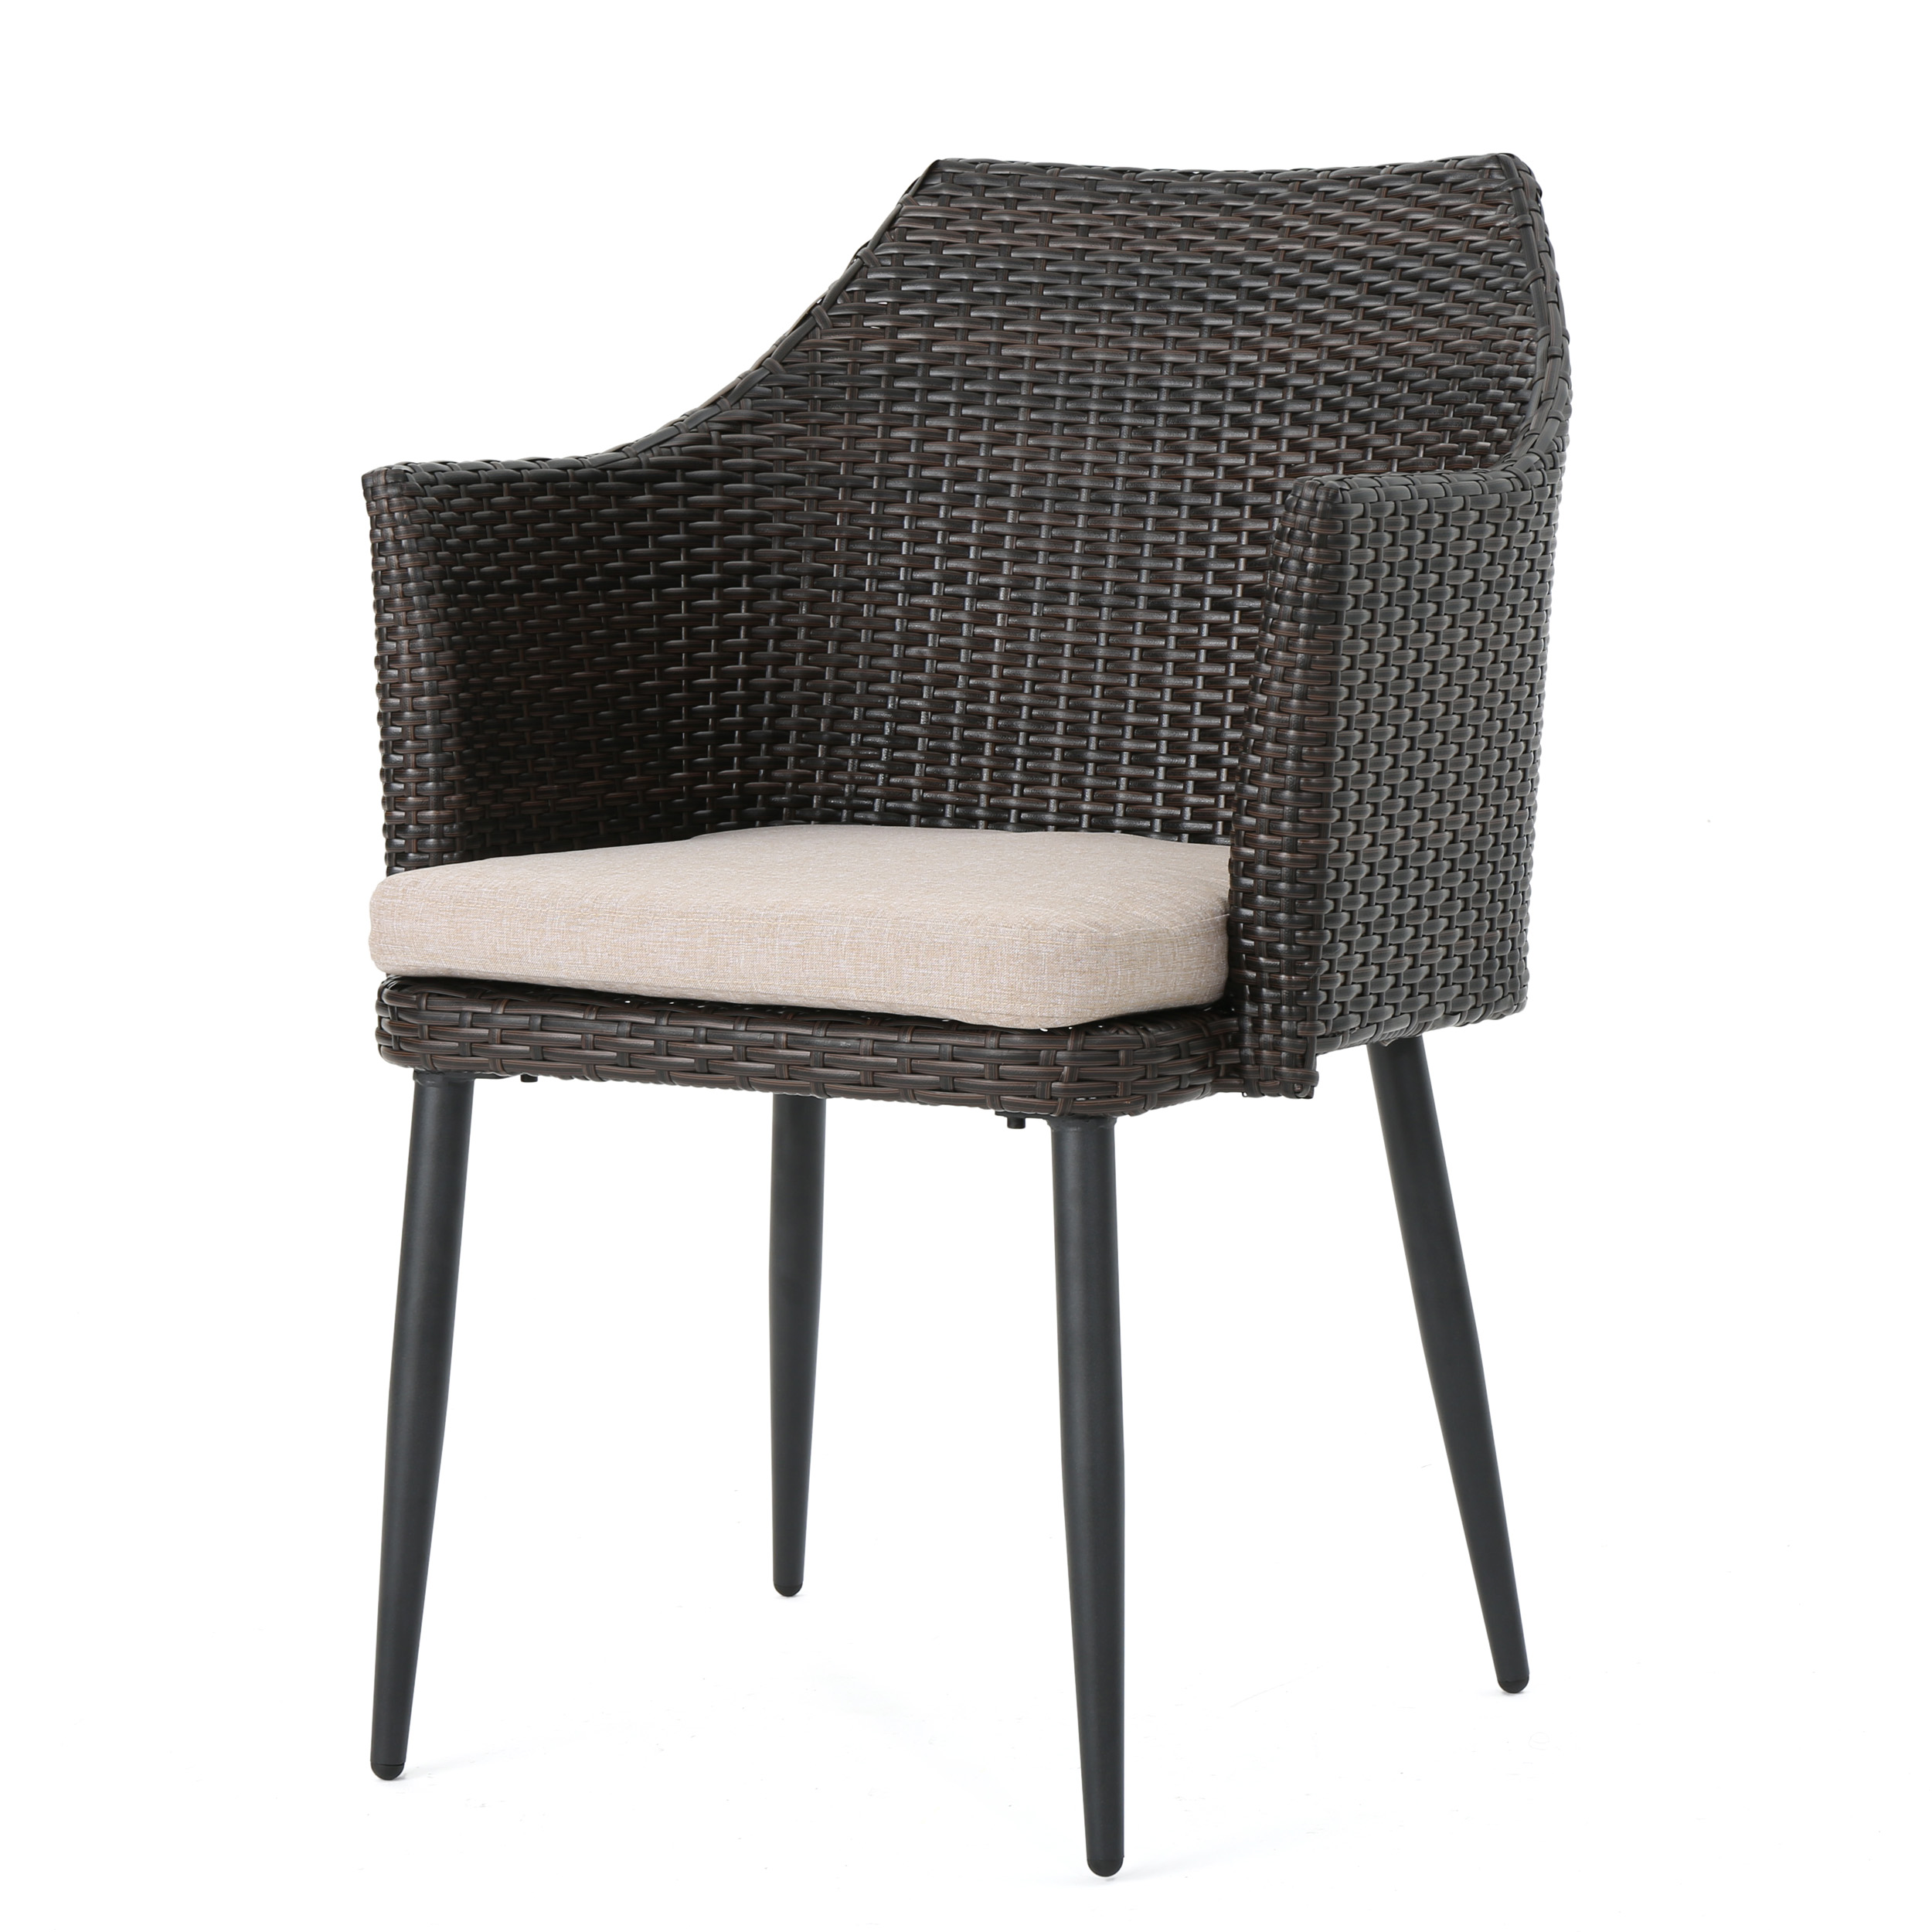 Ibiza-Outdoor-Wicker-Dining-Chairs-with-Water-Resistant-Cushion-Set-of-2 thumbnail 9